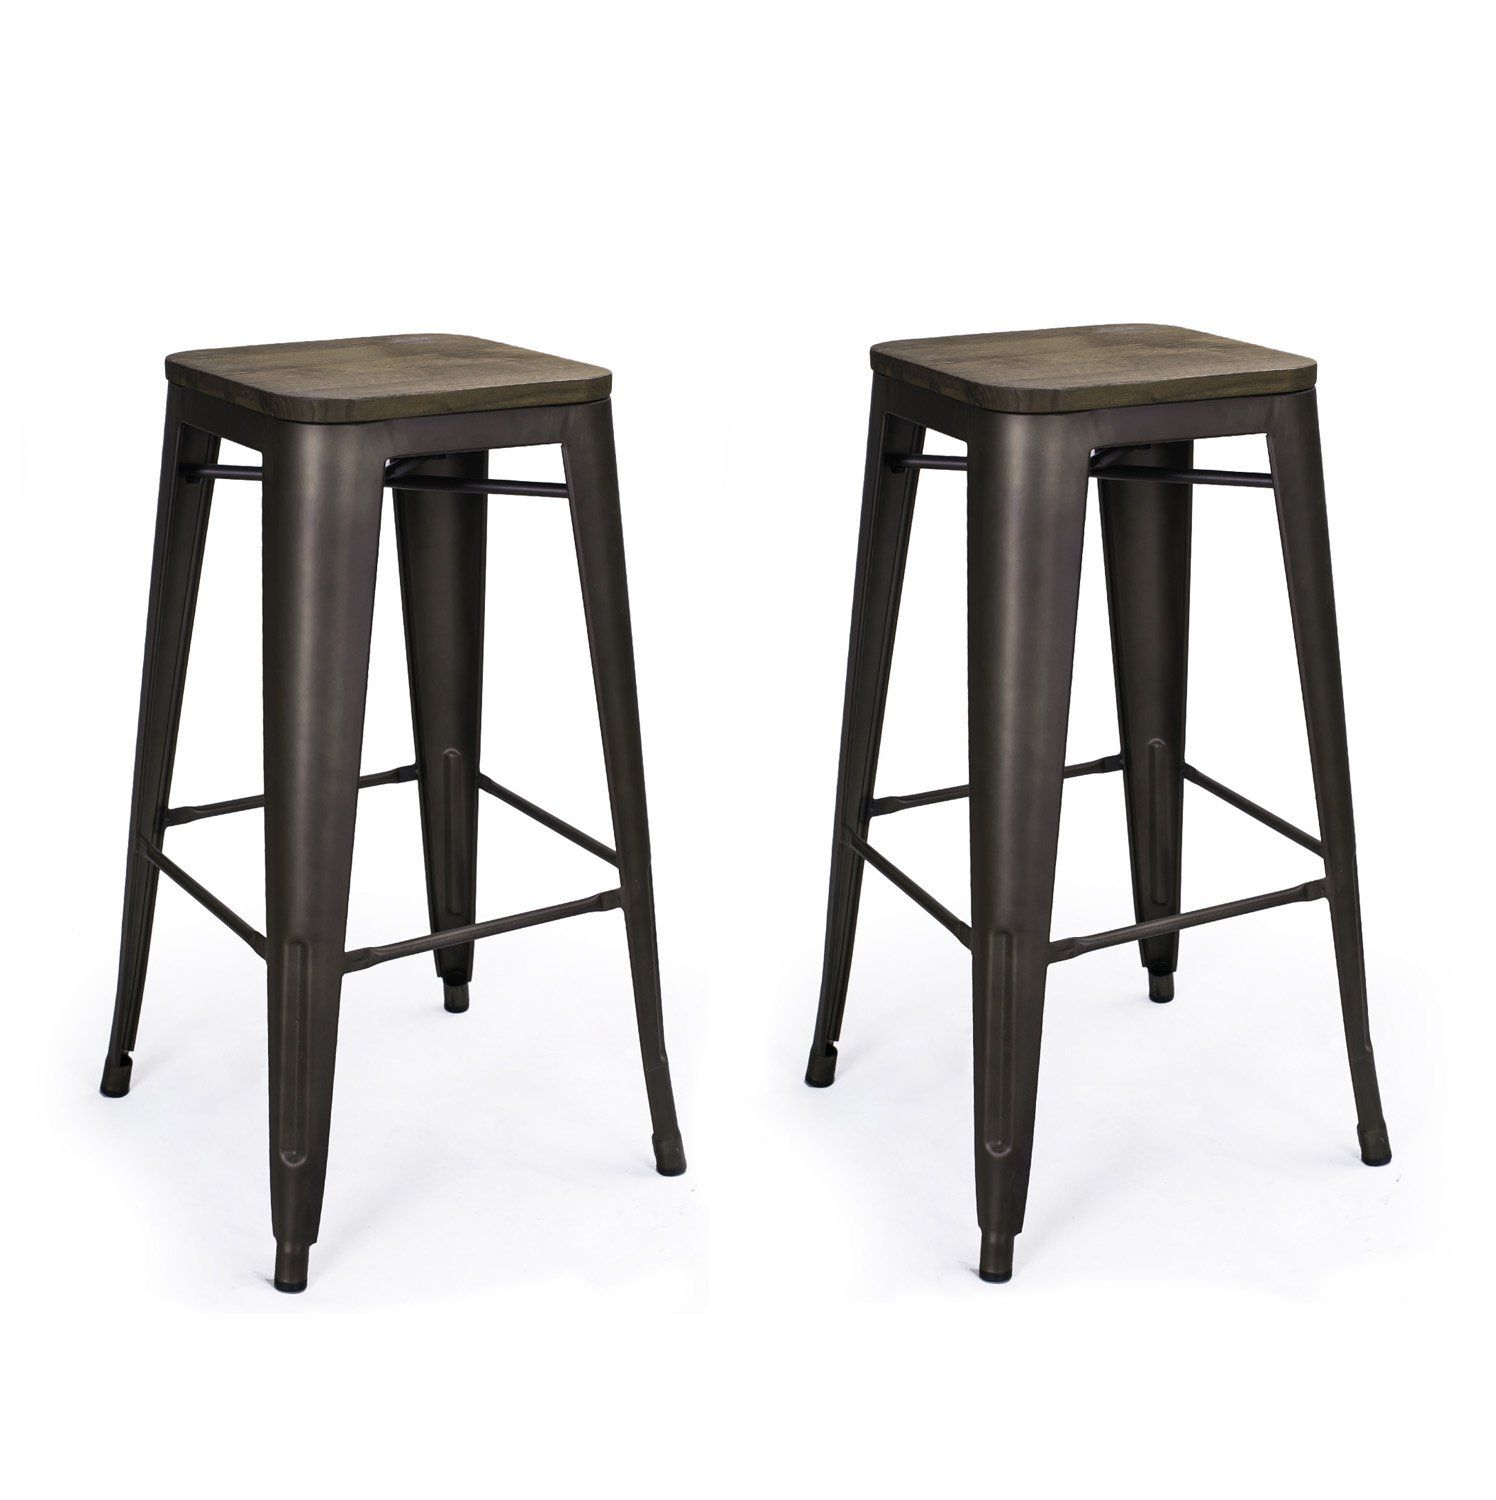 Homebeez Metal Barstools Backless With Wooden Seat Tolix Style